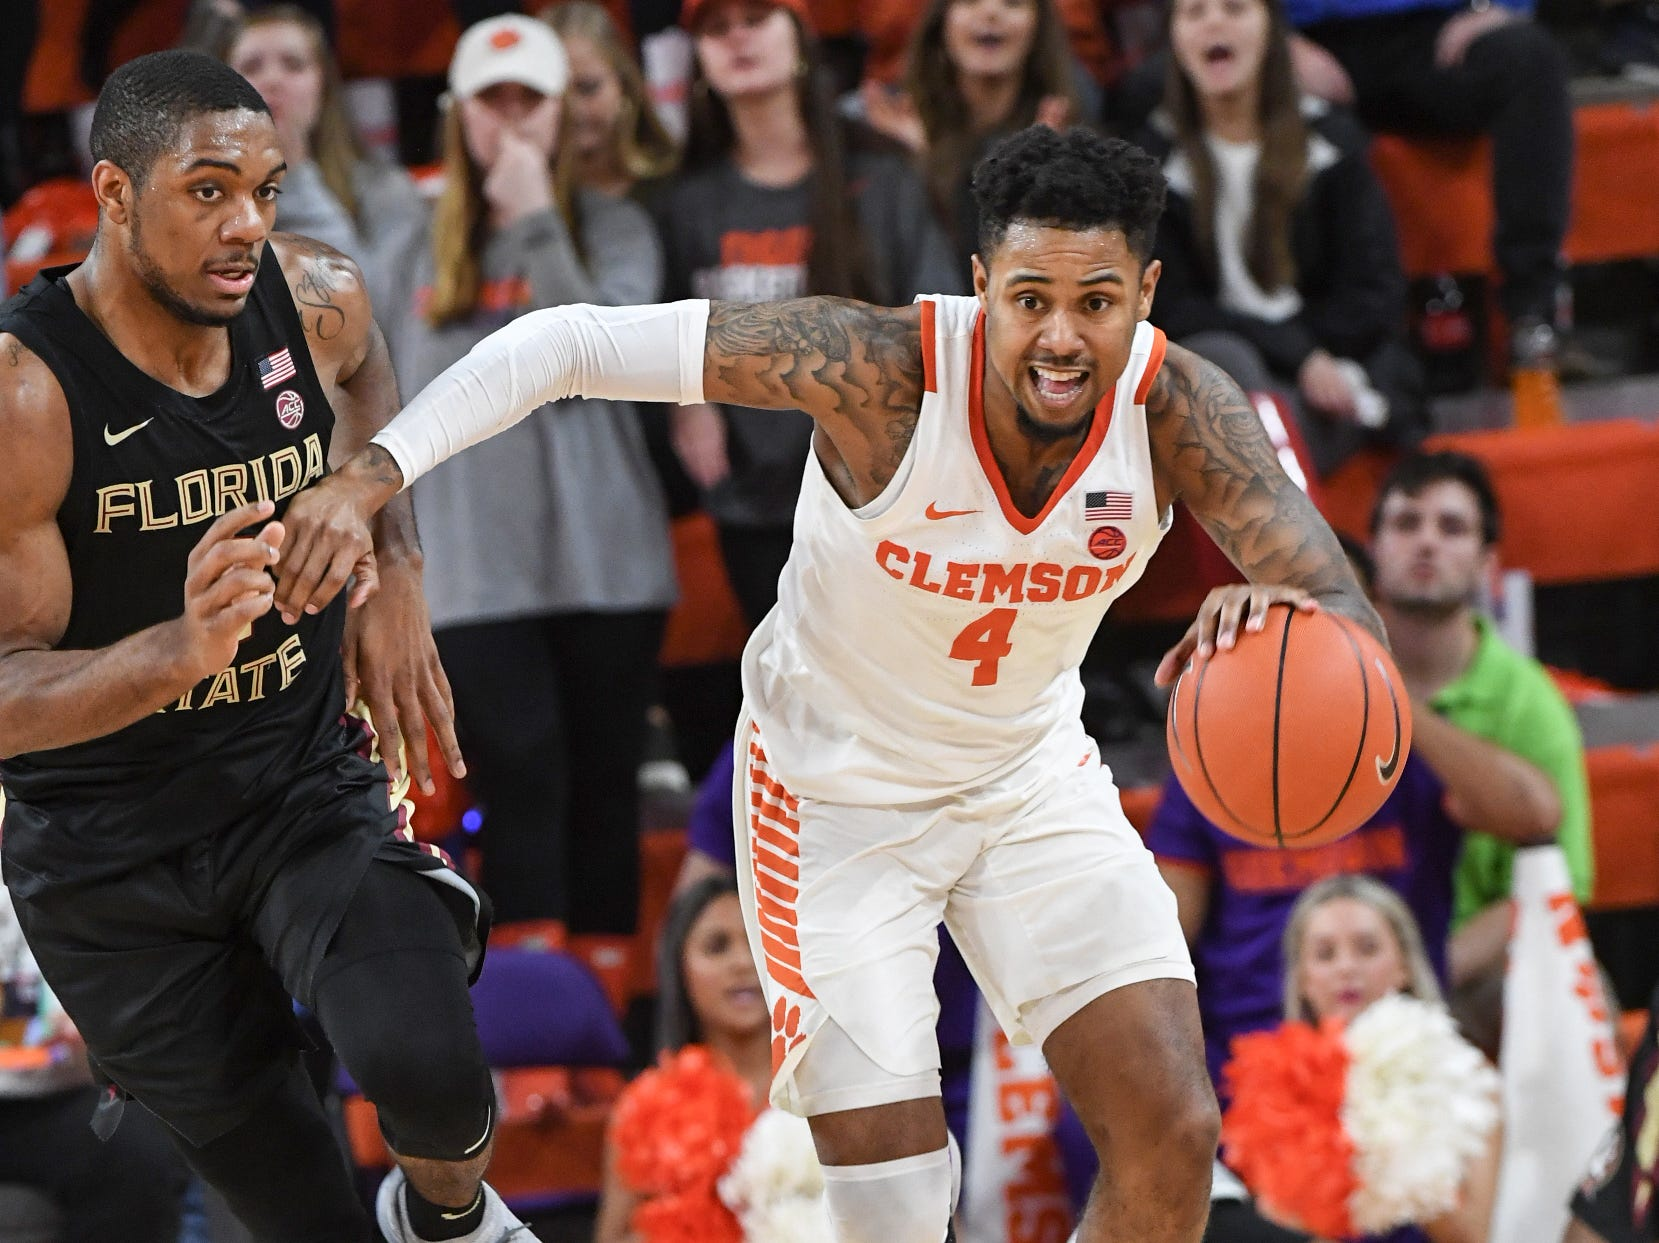 Clemson guard Shelton Mitchell (4) playing Florida State during the second half at Littlejohn Coliseum in Clemson Tuesday, February 19, 2019.